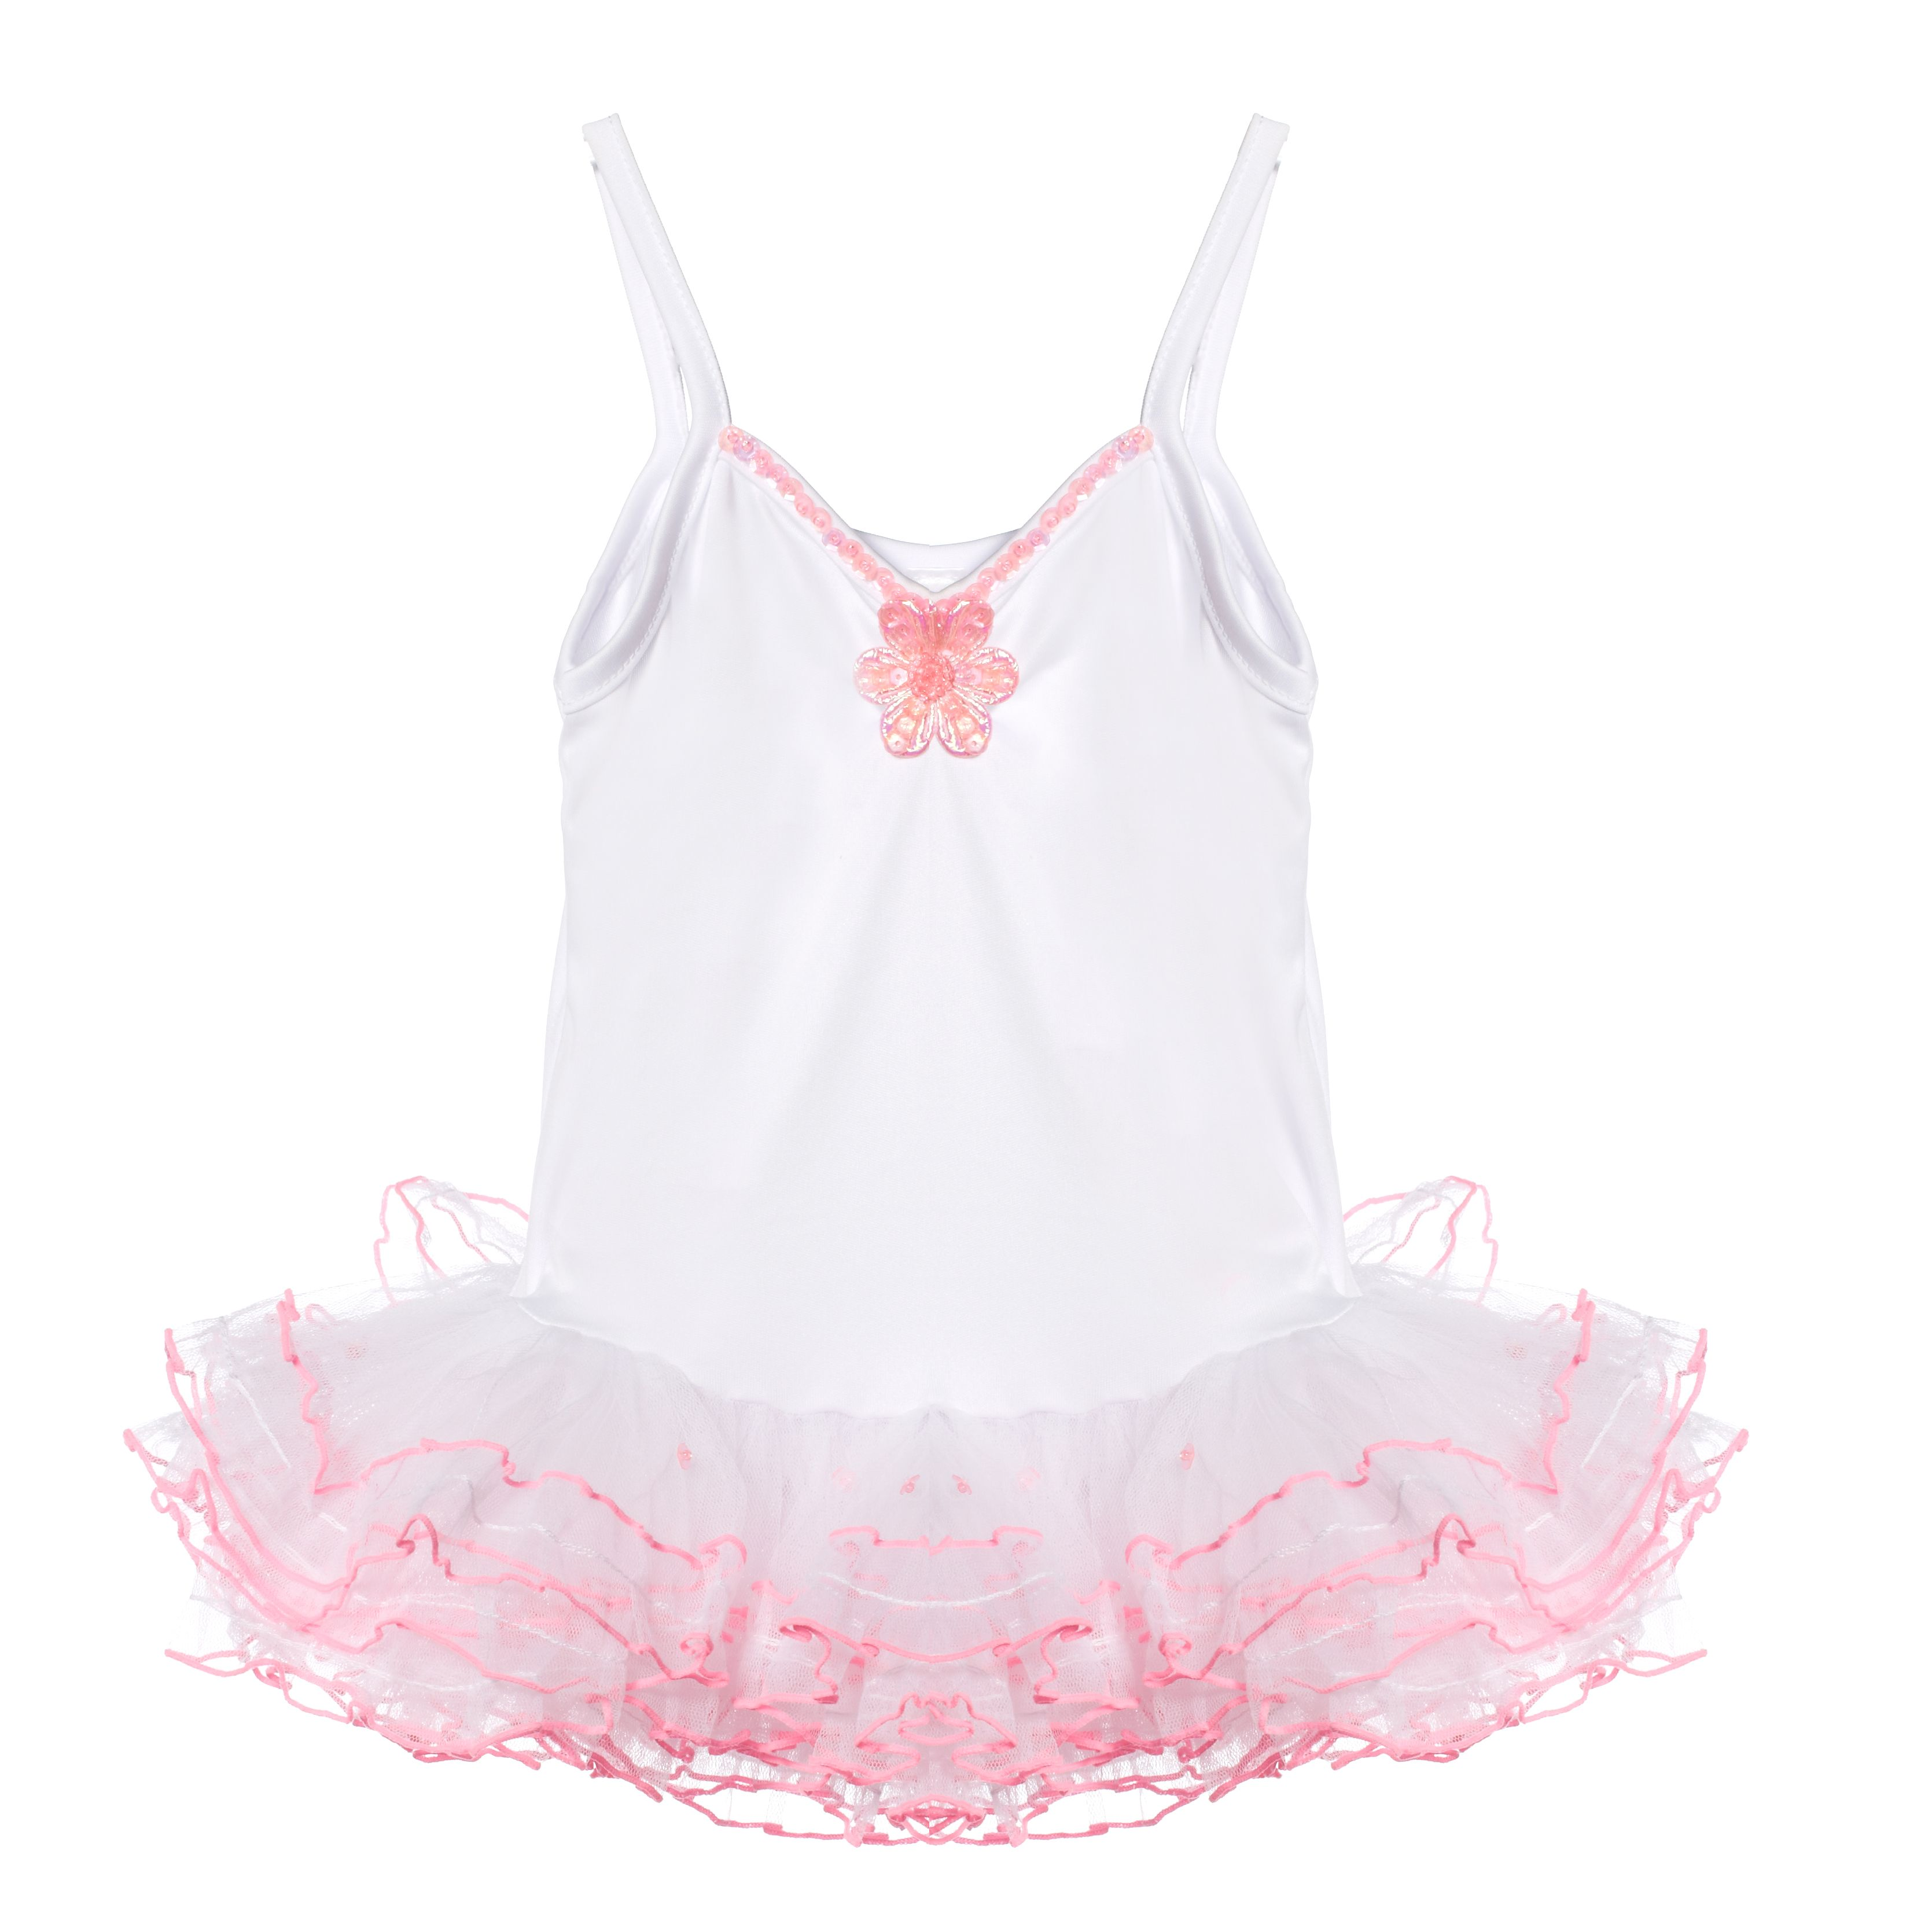 Pretty White and Pink Tutu (age 3 - 5 years)